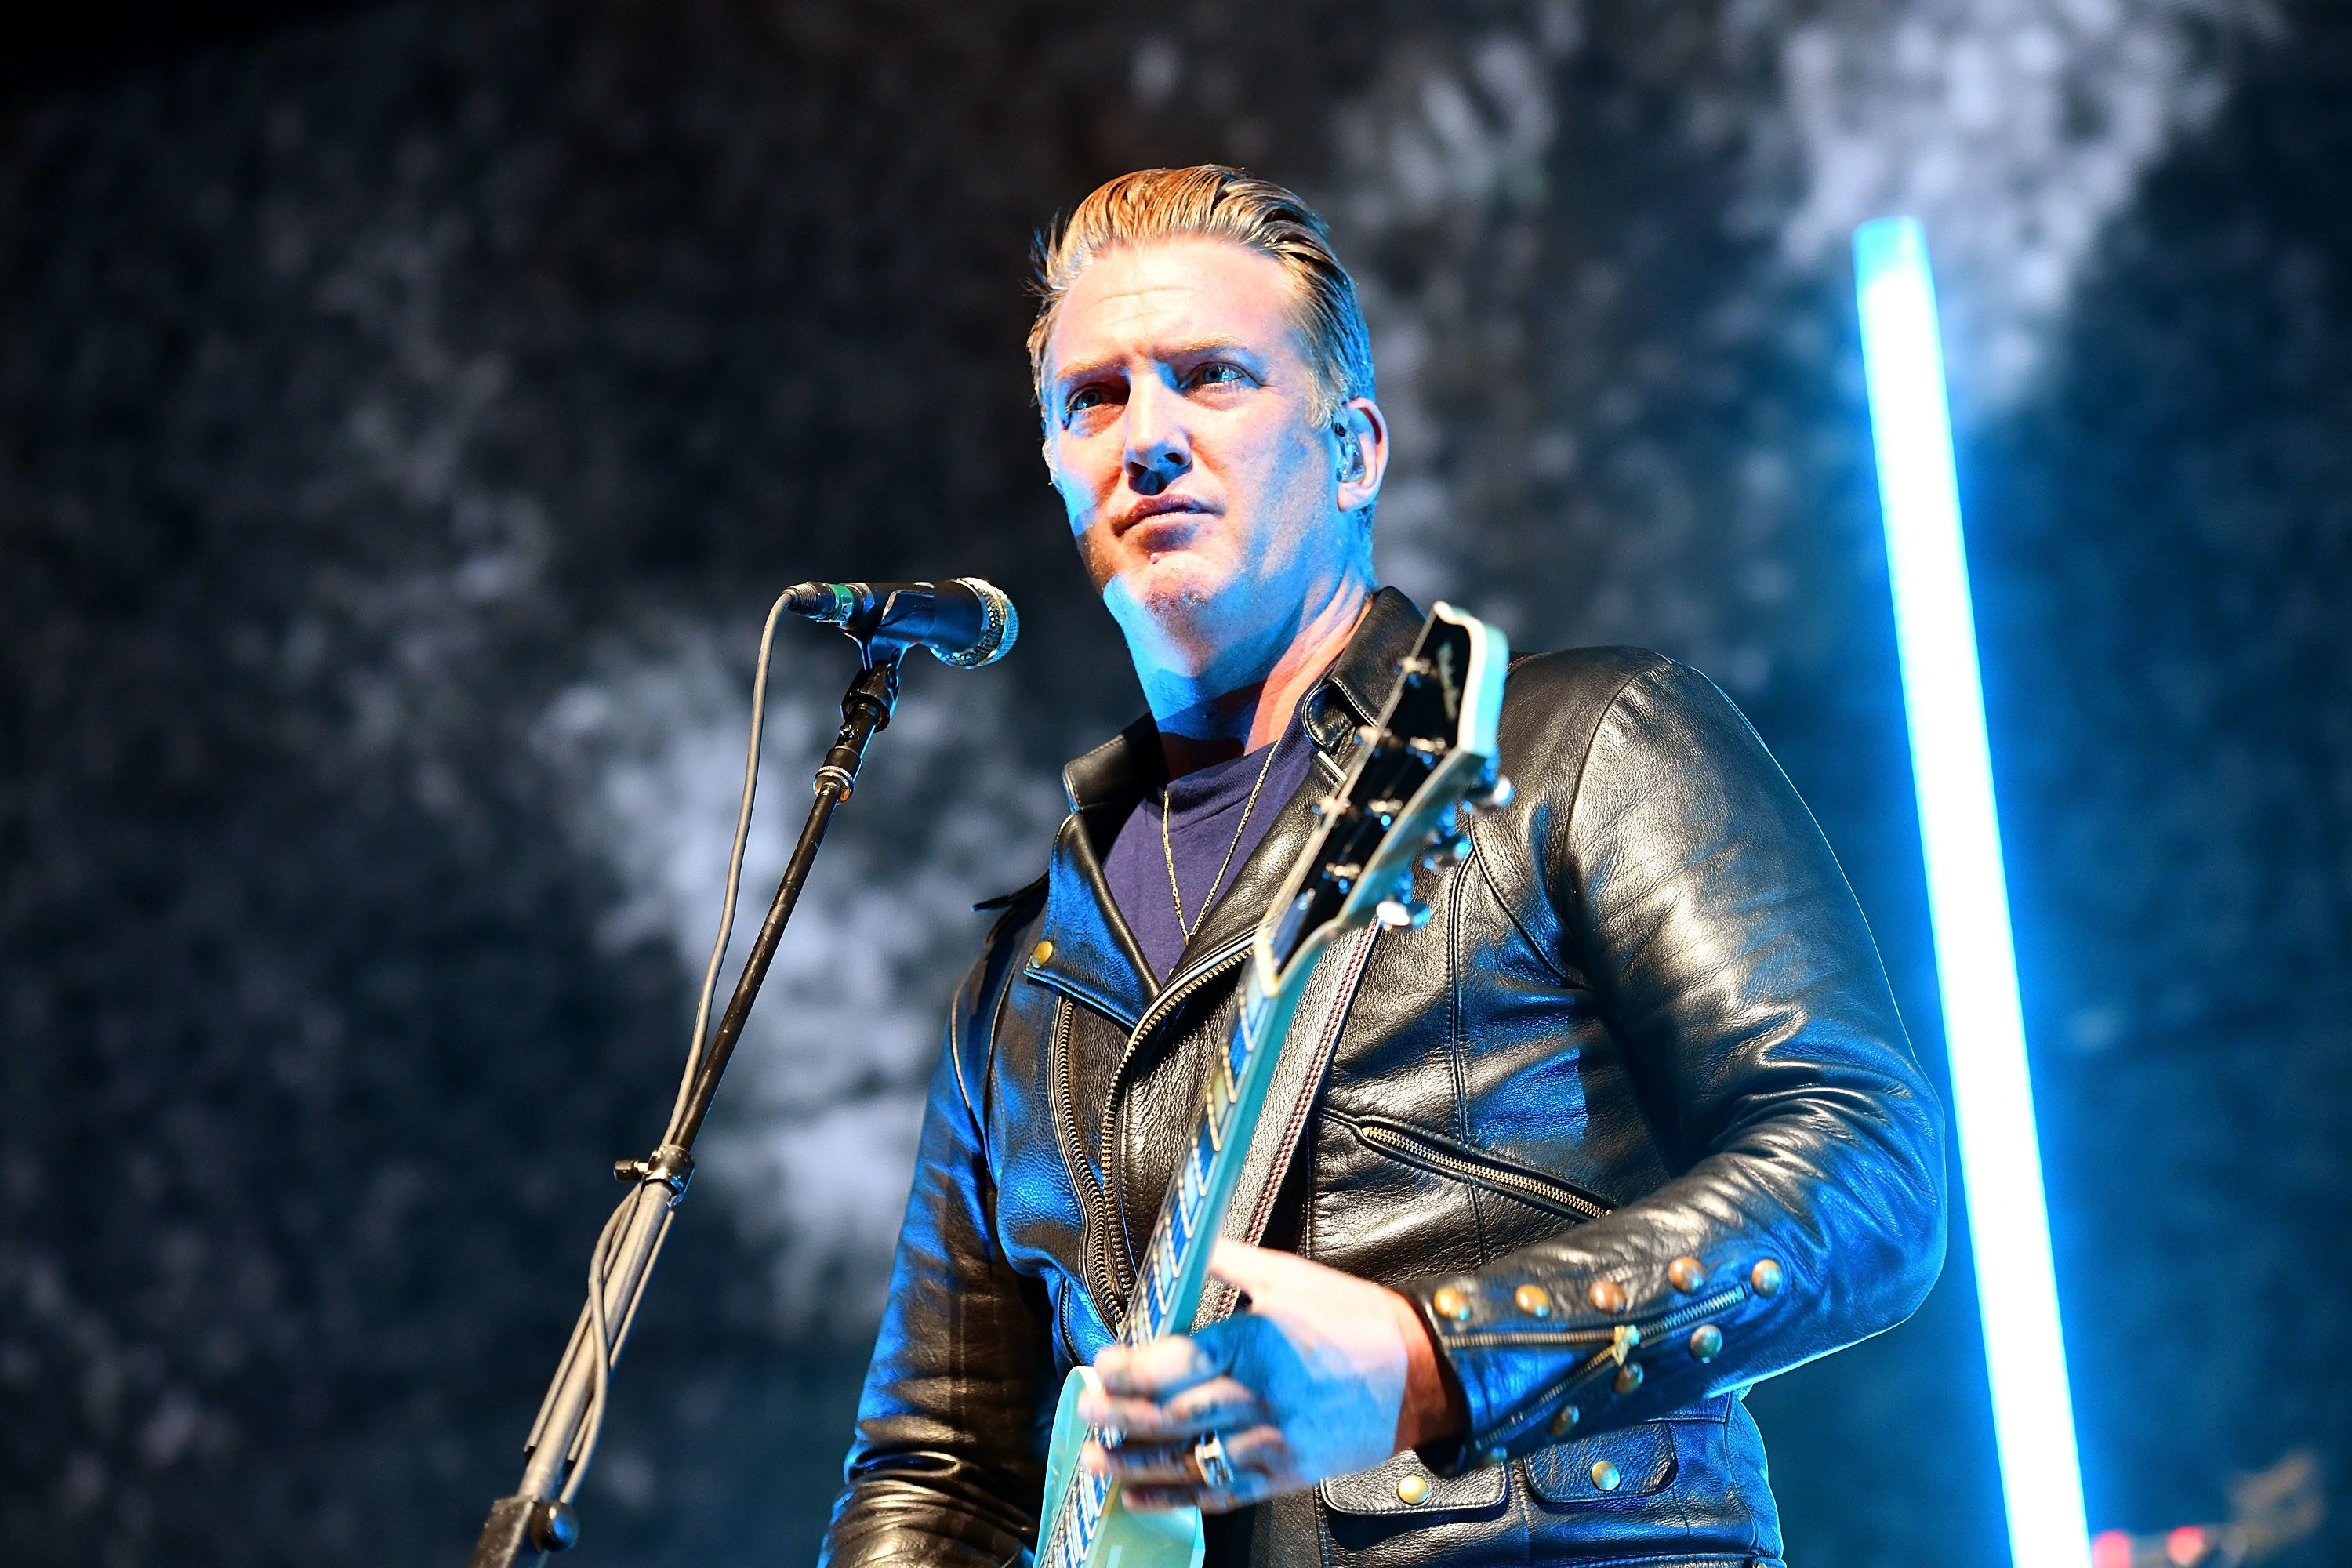 Queens Of The Stone Age Frontman Josh Homme Apologises After Kicking Female Photographer In The Head At